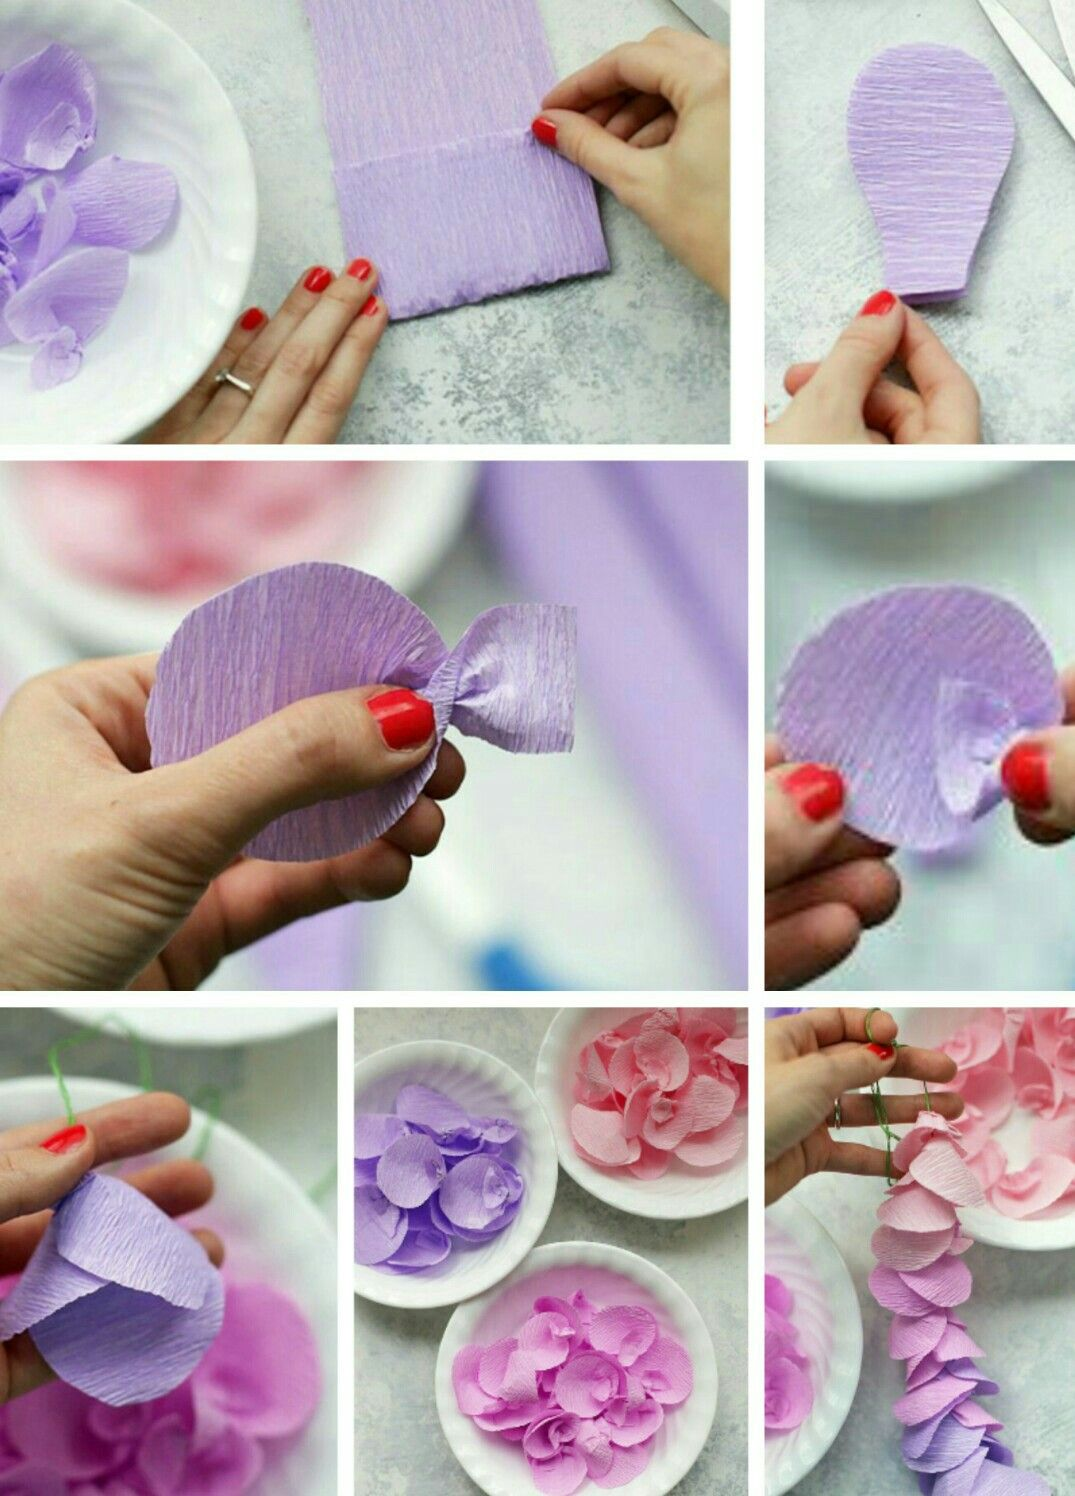 How To Make Crepe Paper Wisteria Flowers Paper Flowers Diy Paper Flower Tutorial Diy Spring Crafts